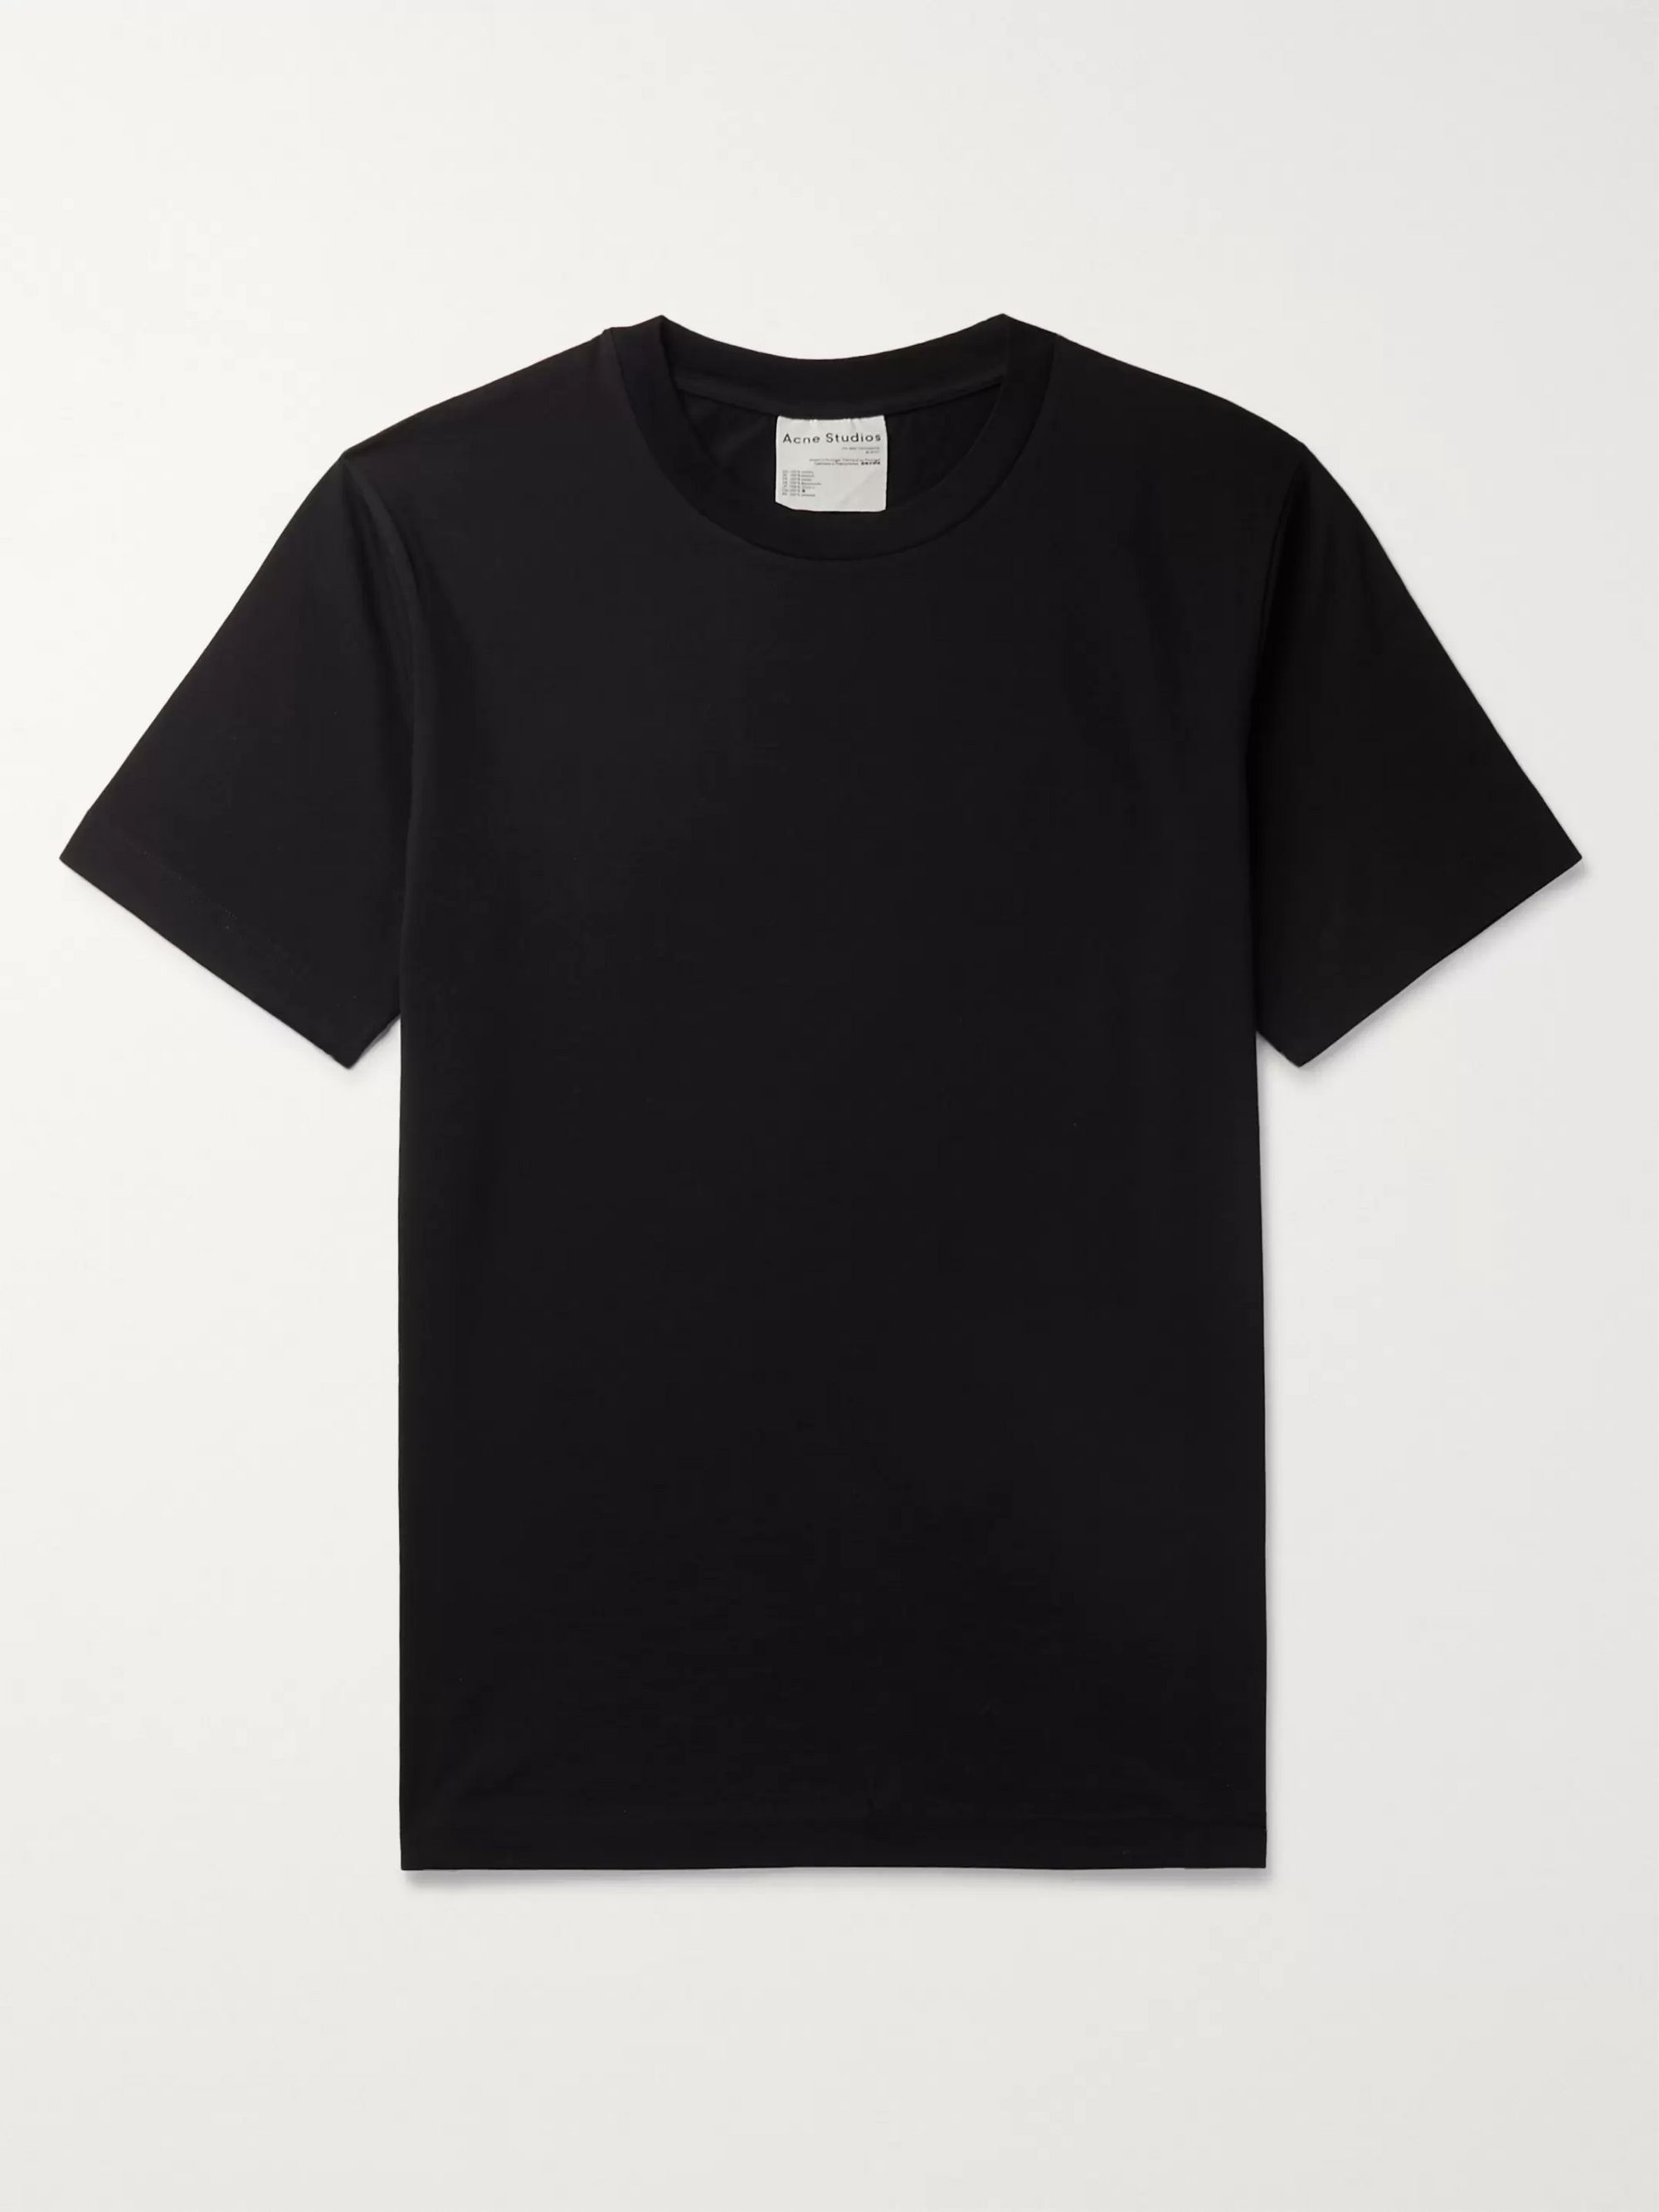 아크네 스튜디오 Acne Studios Slim-Fit Cotton-Jersey T-Shirt,Black